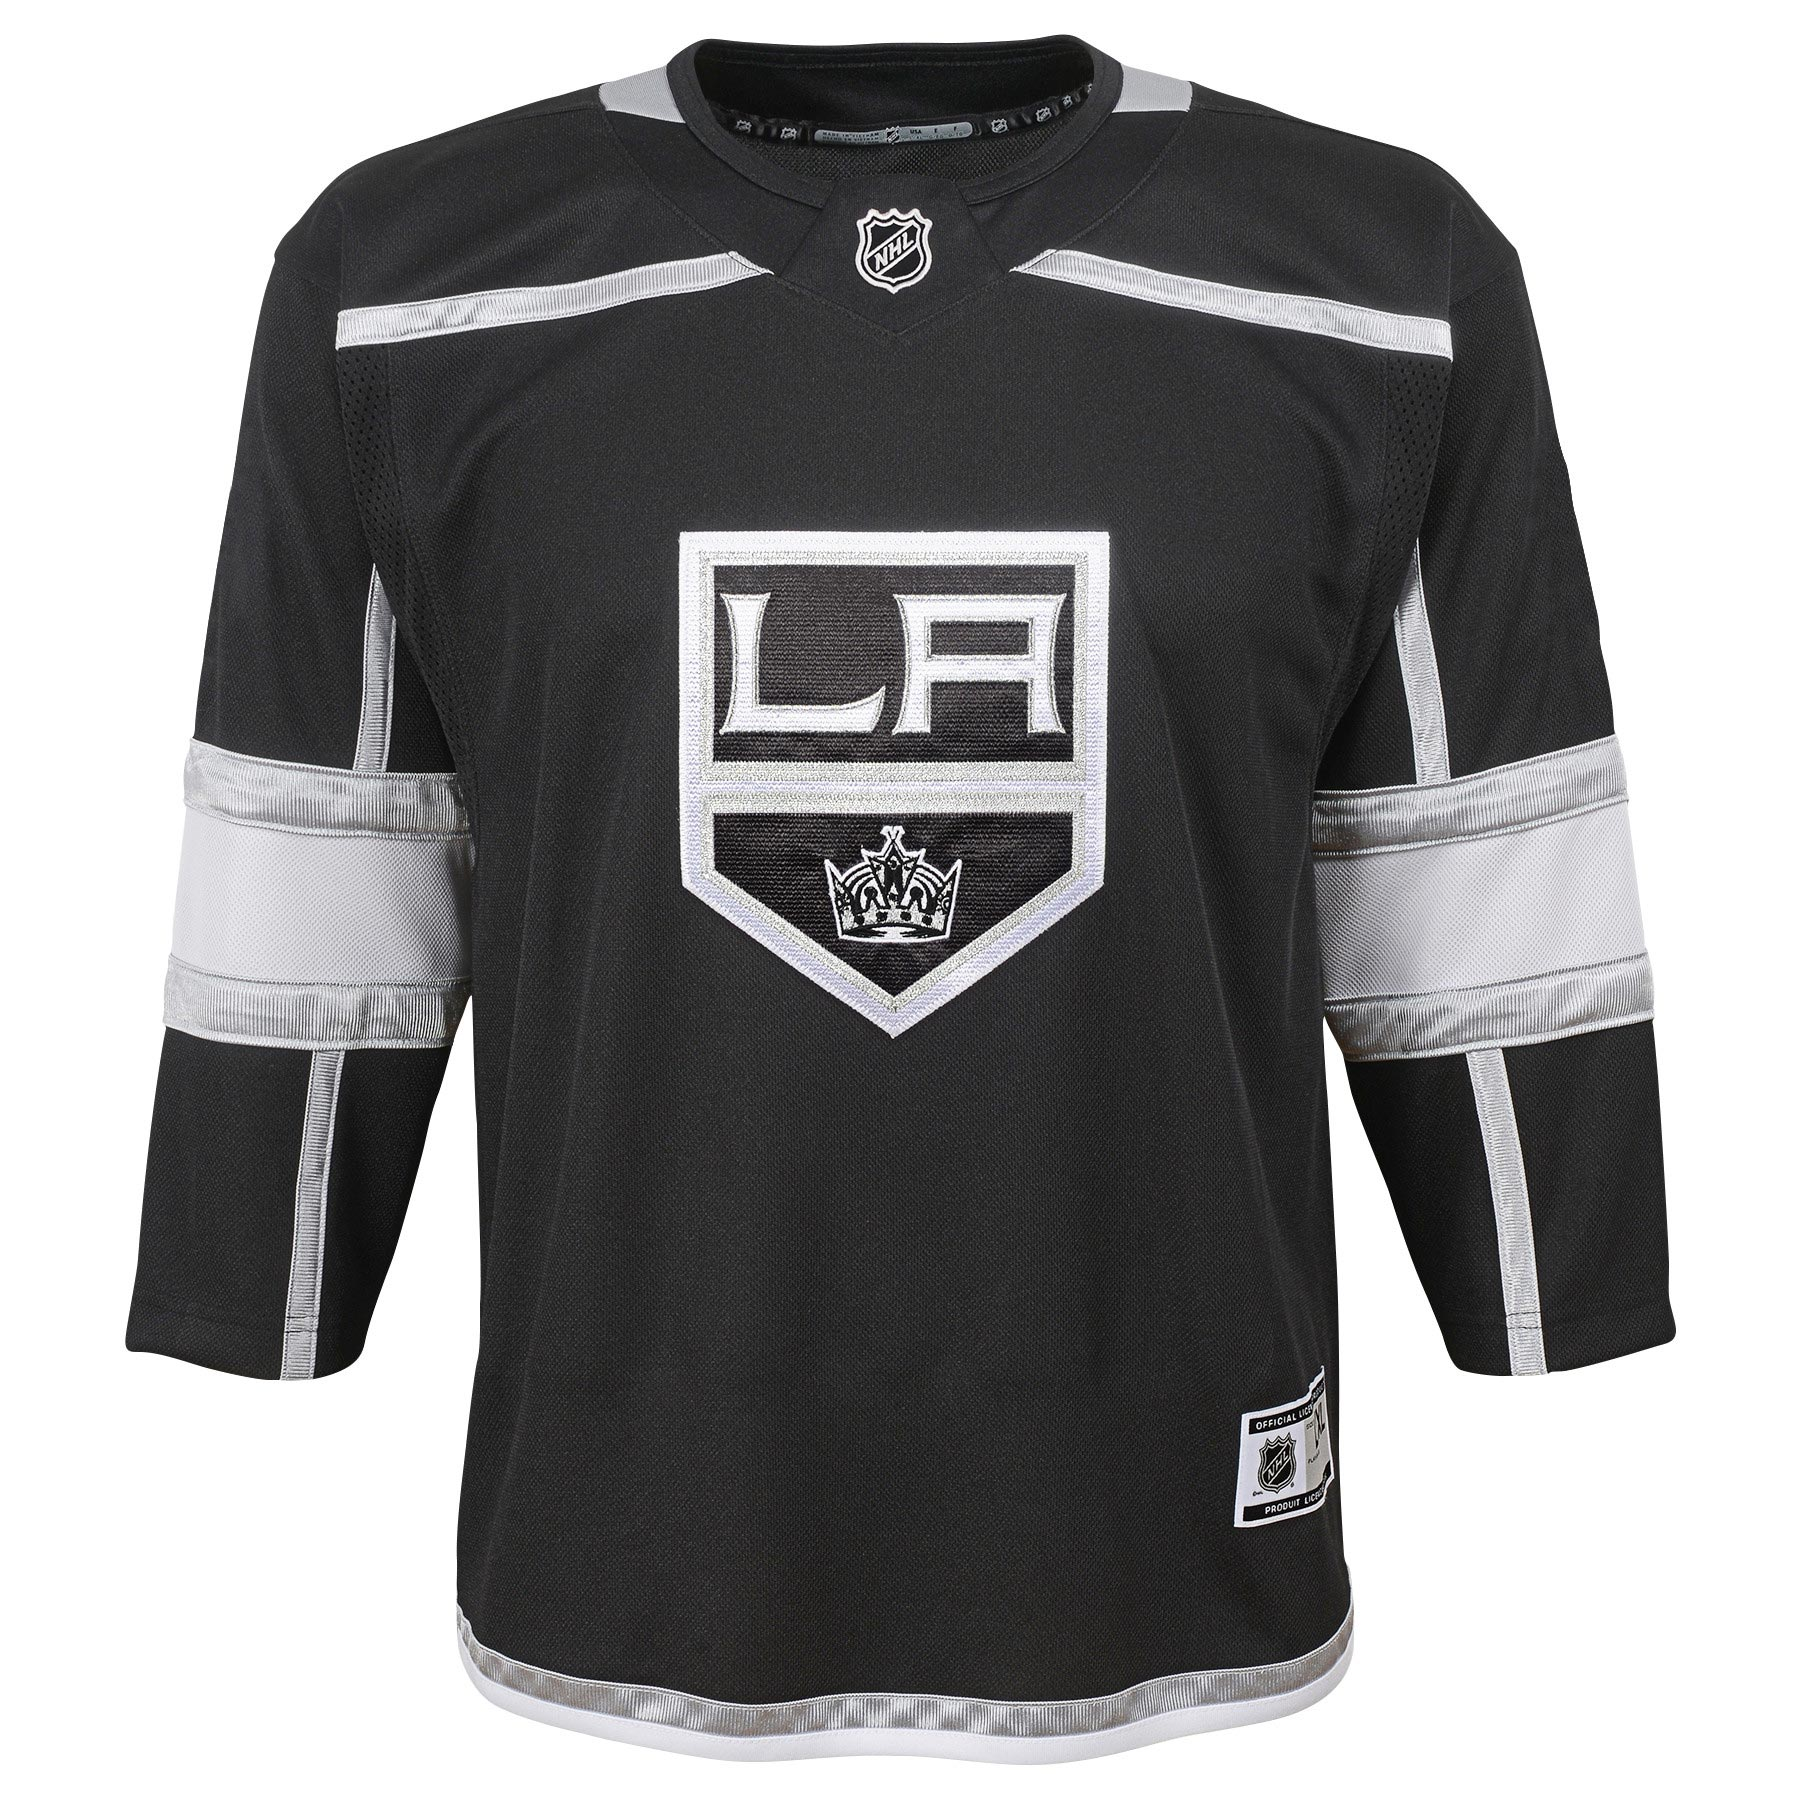 a1f3b6a04 Los Angeles Kings NHL Premier Youth Replica Home Hockey Jersey ...